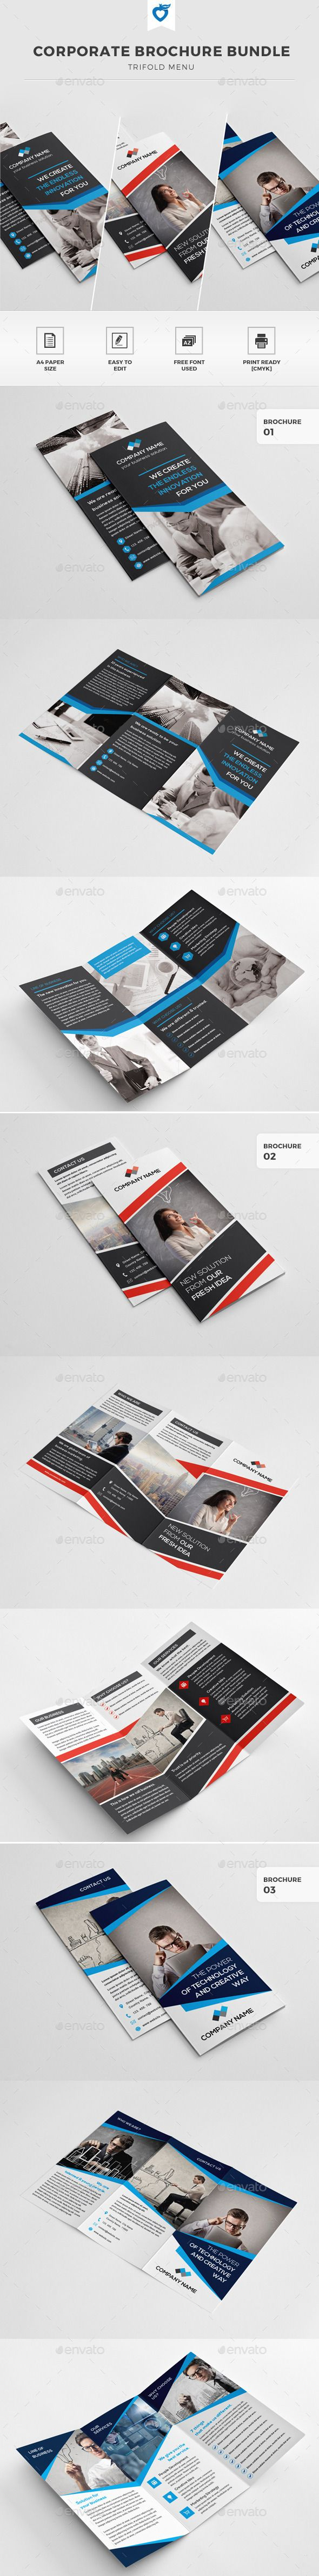 11 best full page ads images on pinterest editorial design graph